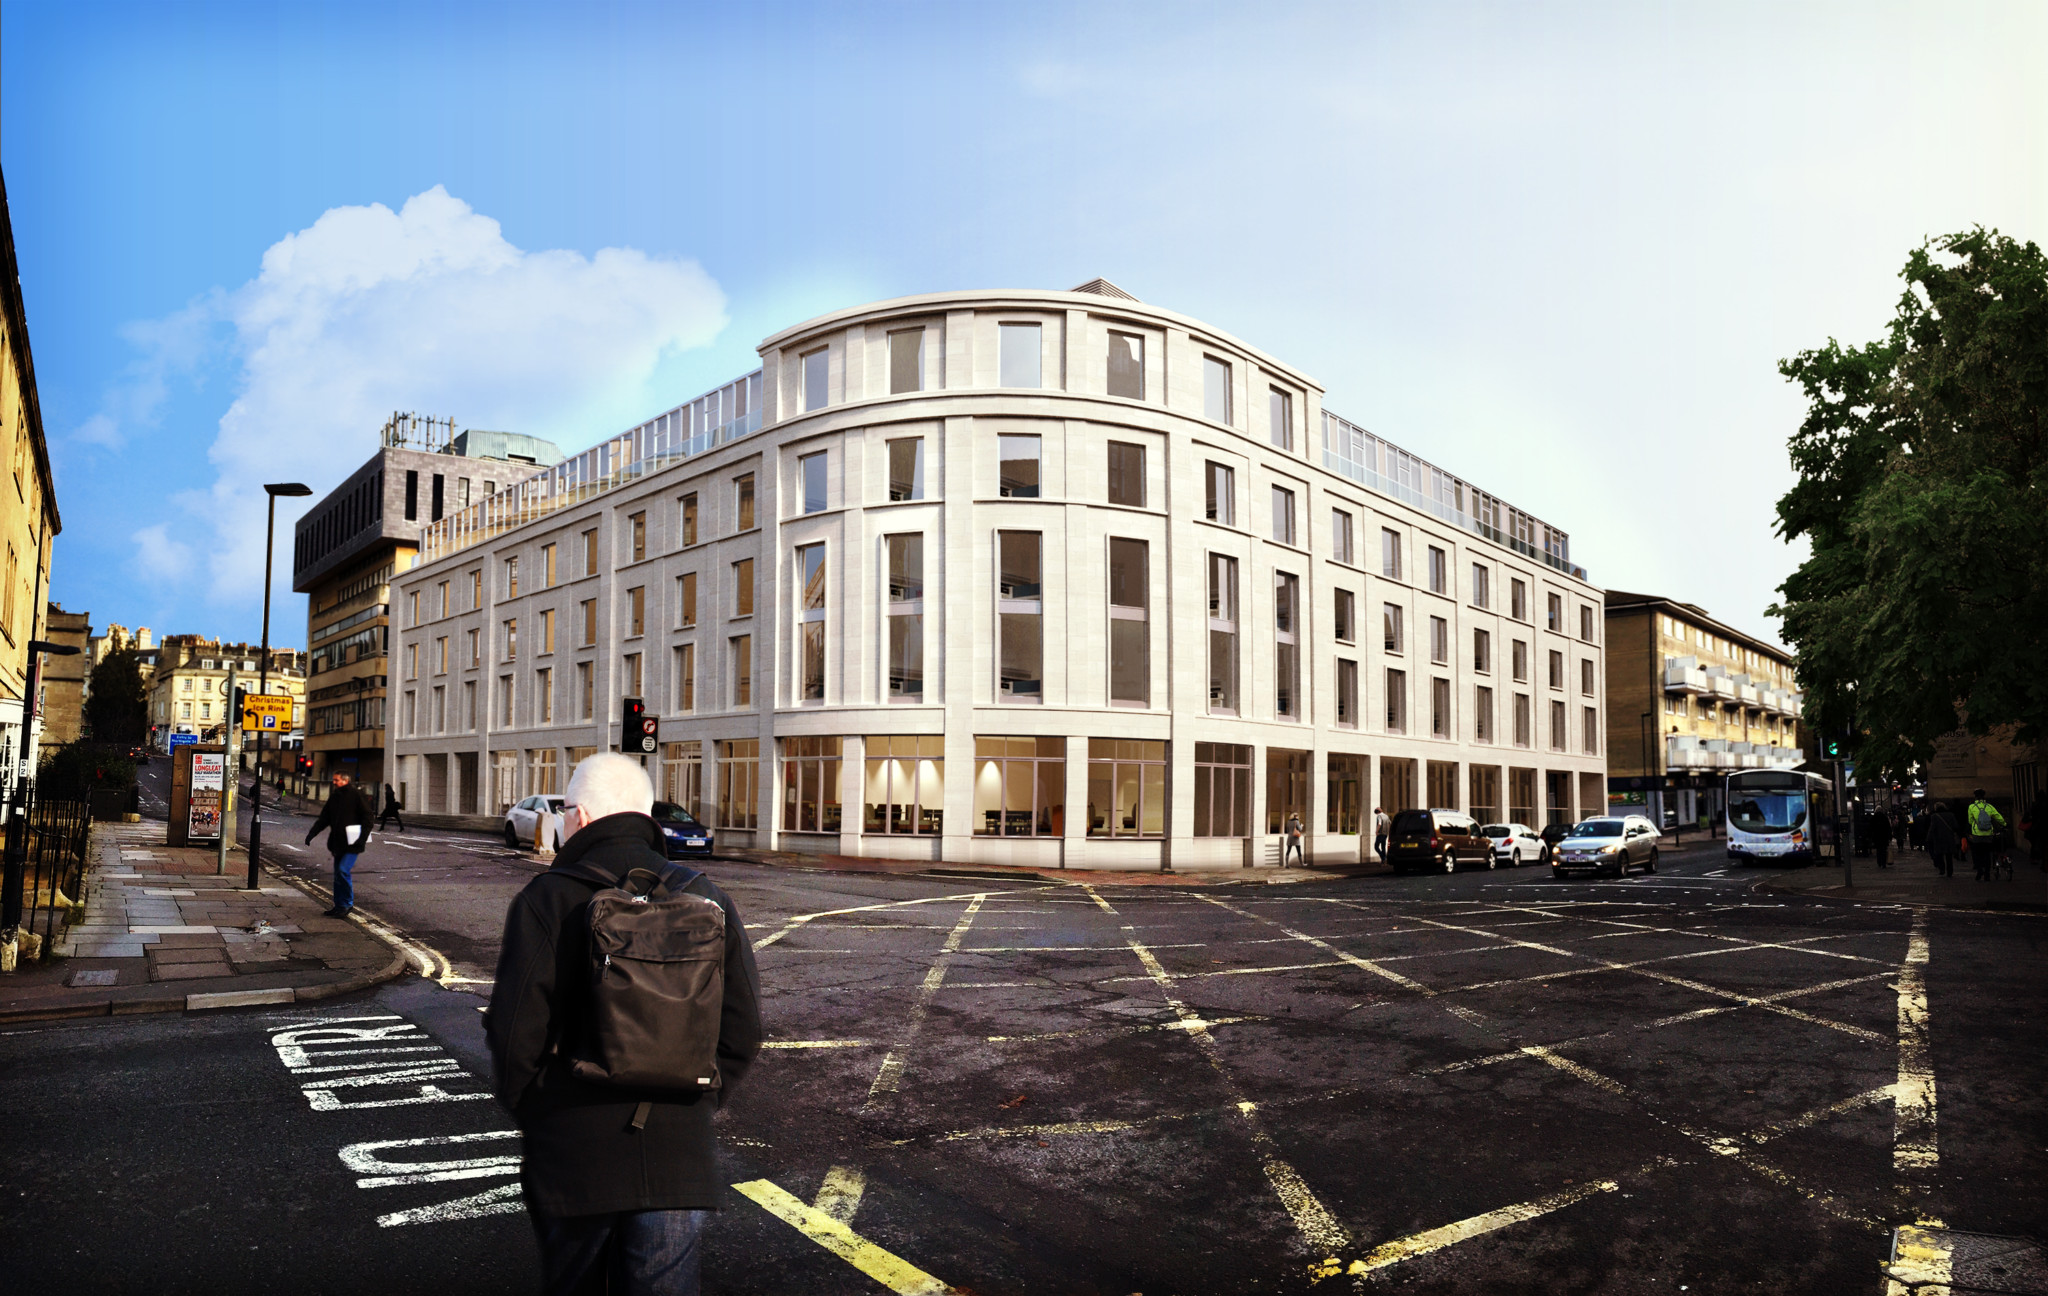 City of Bath Apex Hotel - CGI